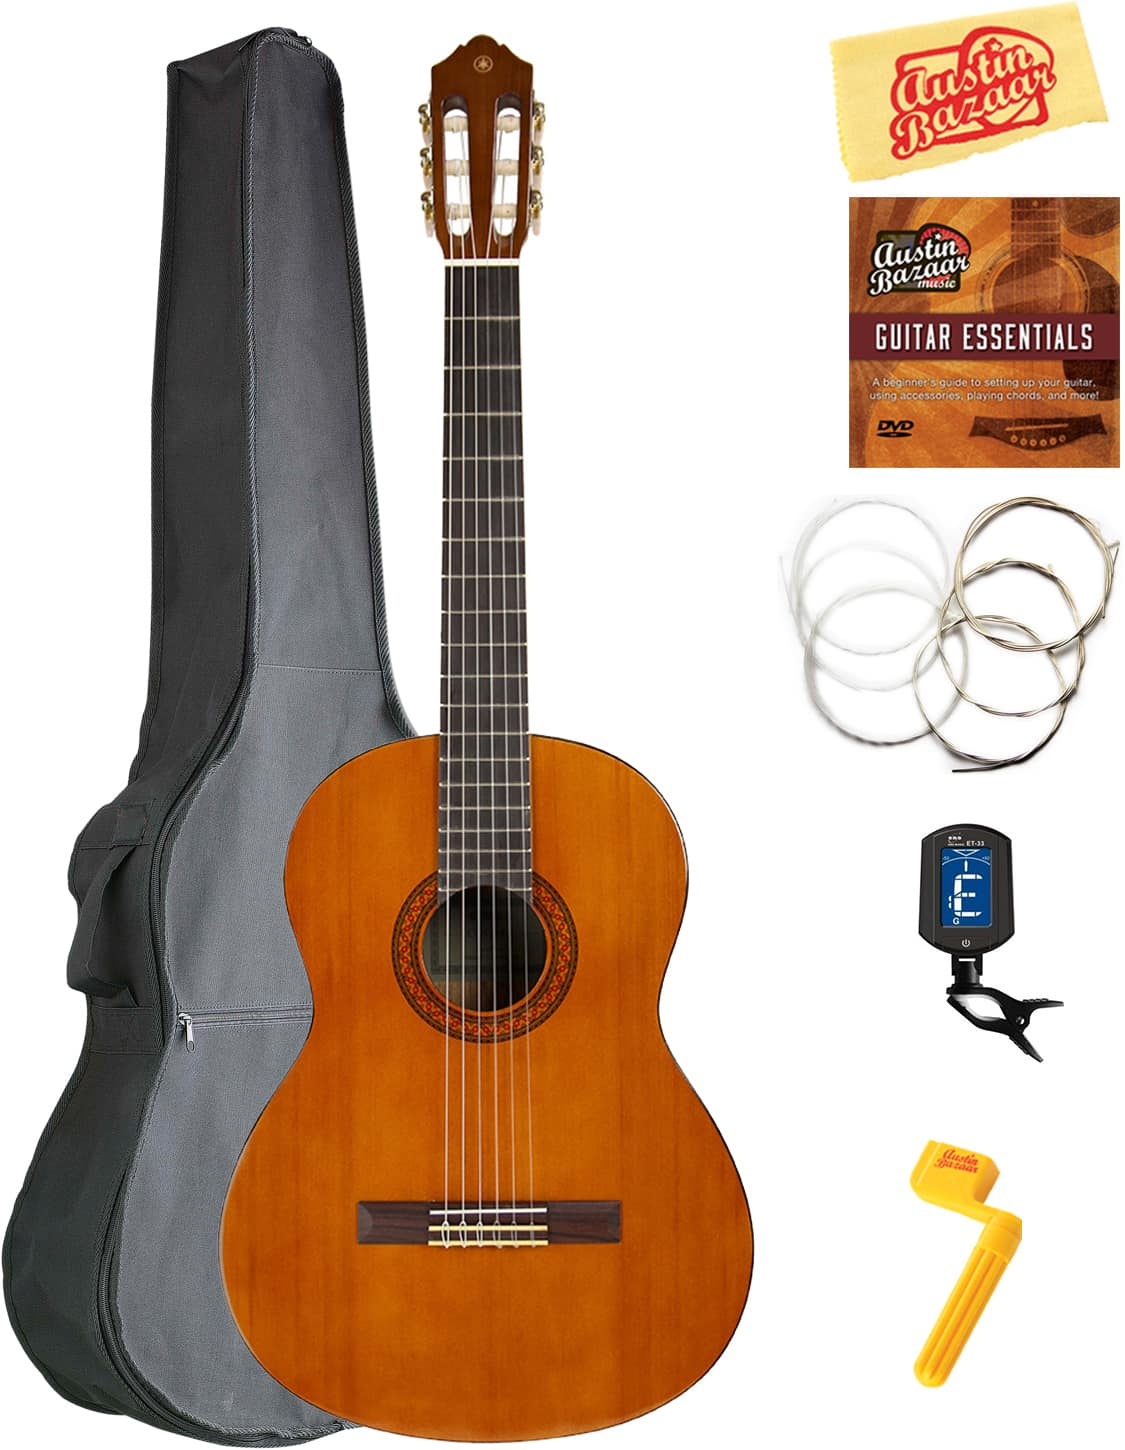 Yamaha c40 classical guitar w gig bag austin bazaar for Yamaha classic guitar